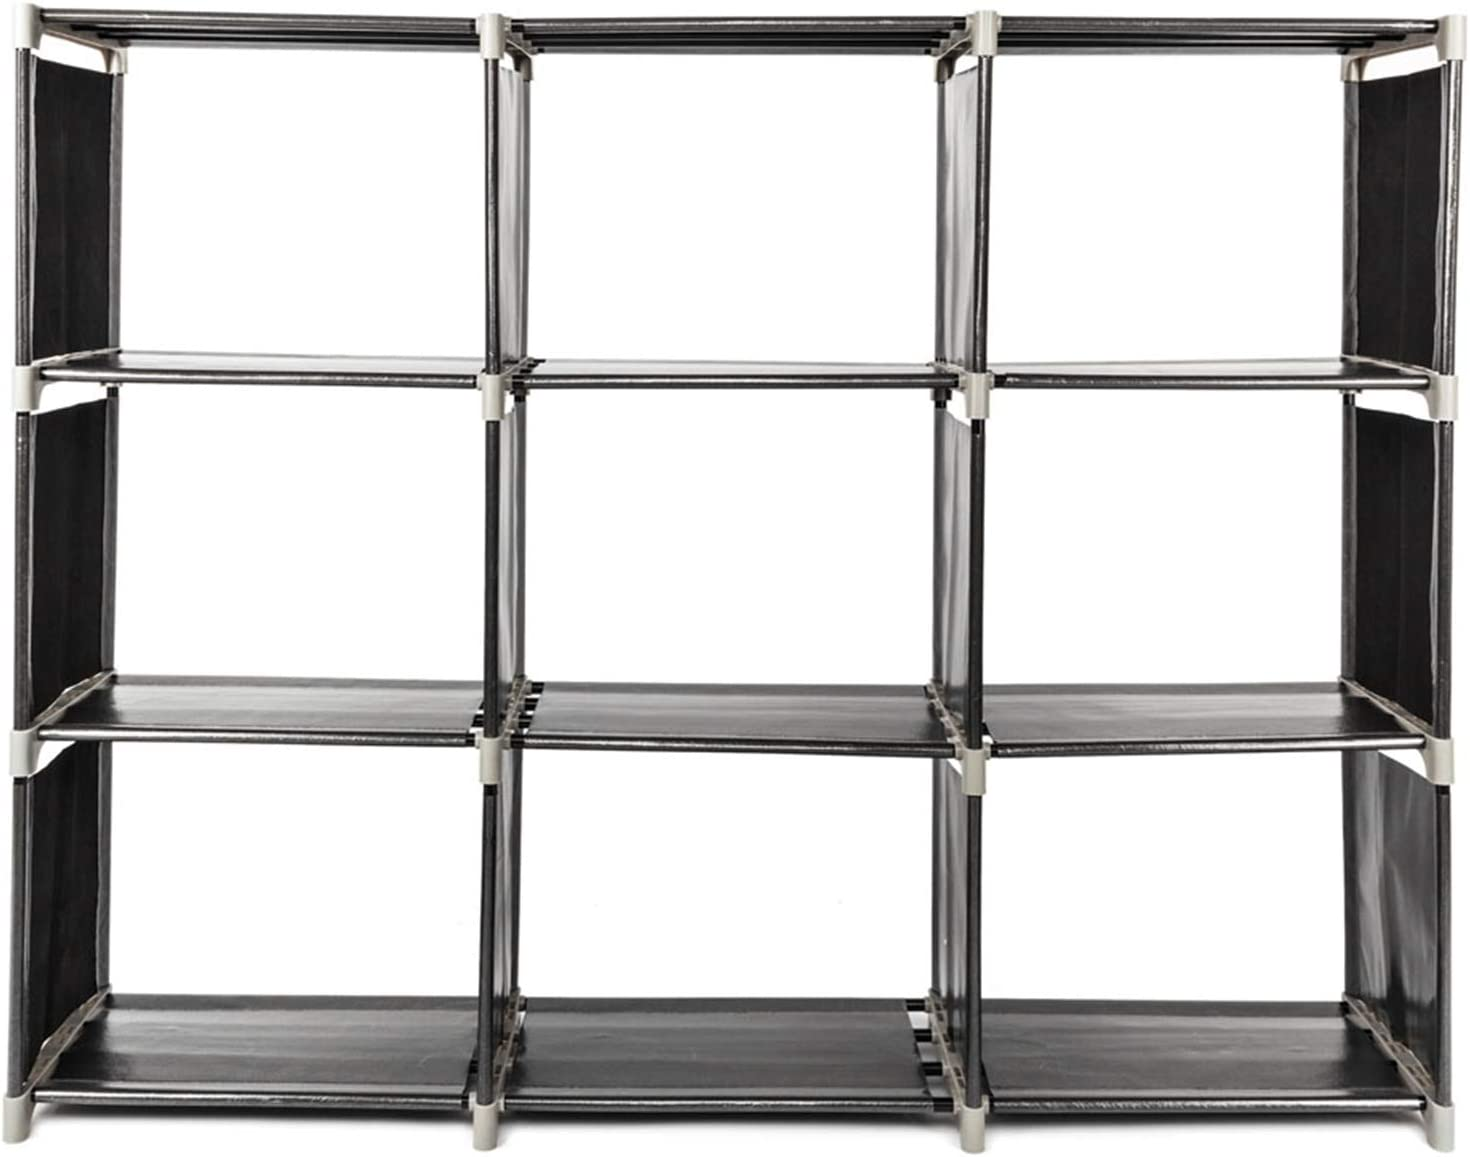 Multifunctional Assembled 3 Max 58% OFF Tiers 5 popular 9 Storage Compartments Shelf B